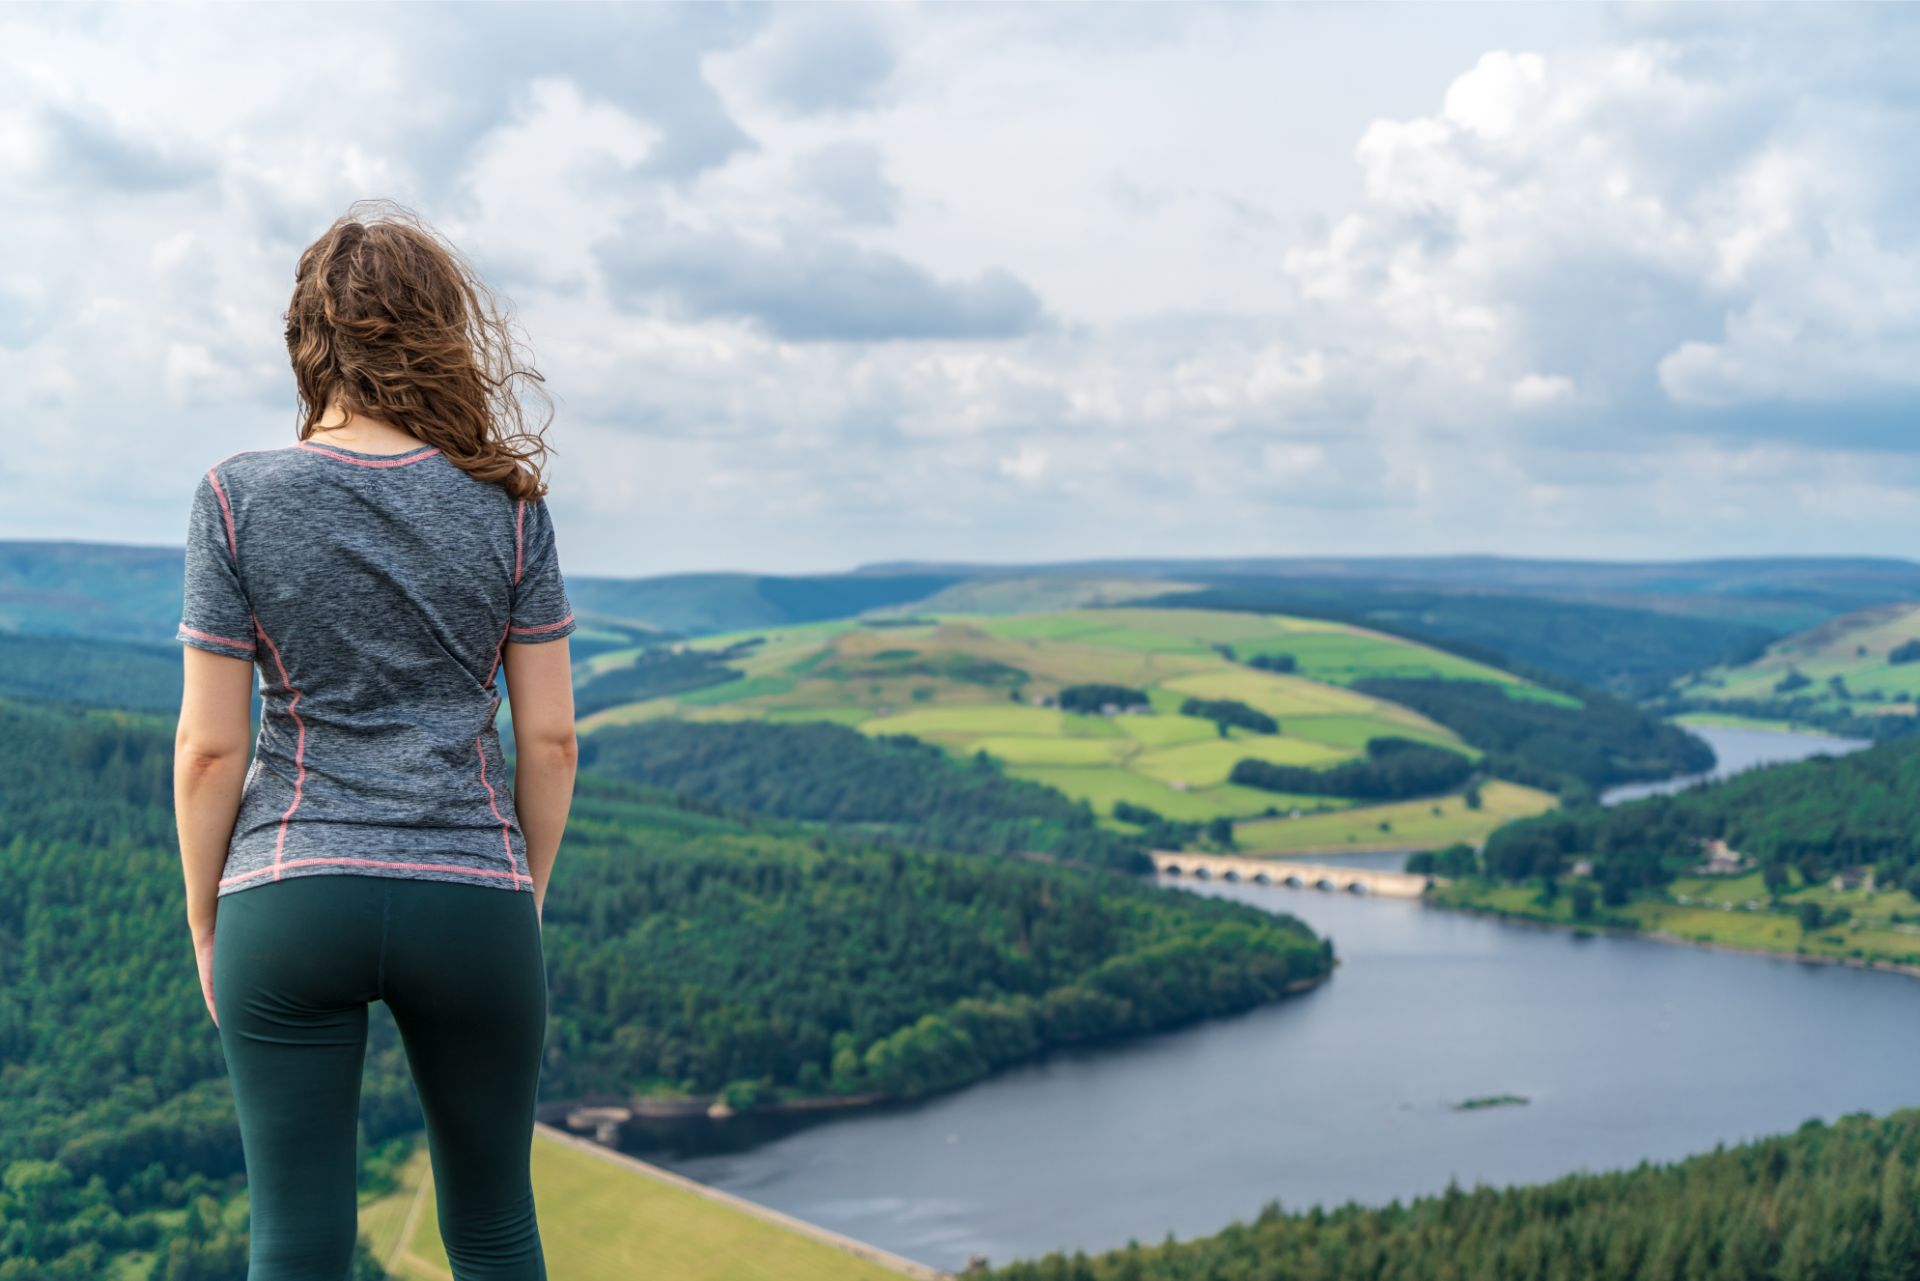 woman-in-sportsgear-standing-on-hill-admiring-a-view-of-a-reservoir-bridge-and-hills-at-bamford-edge-in-the-peak-district